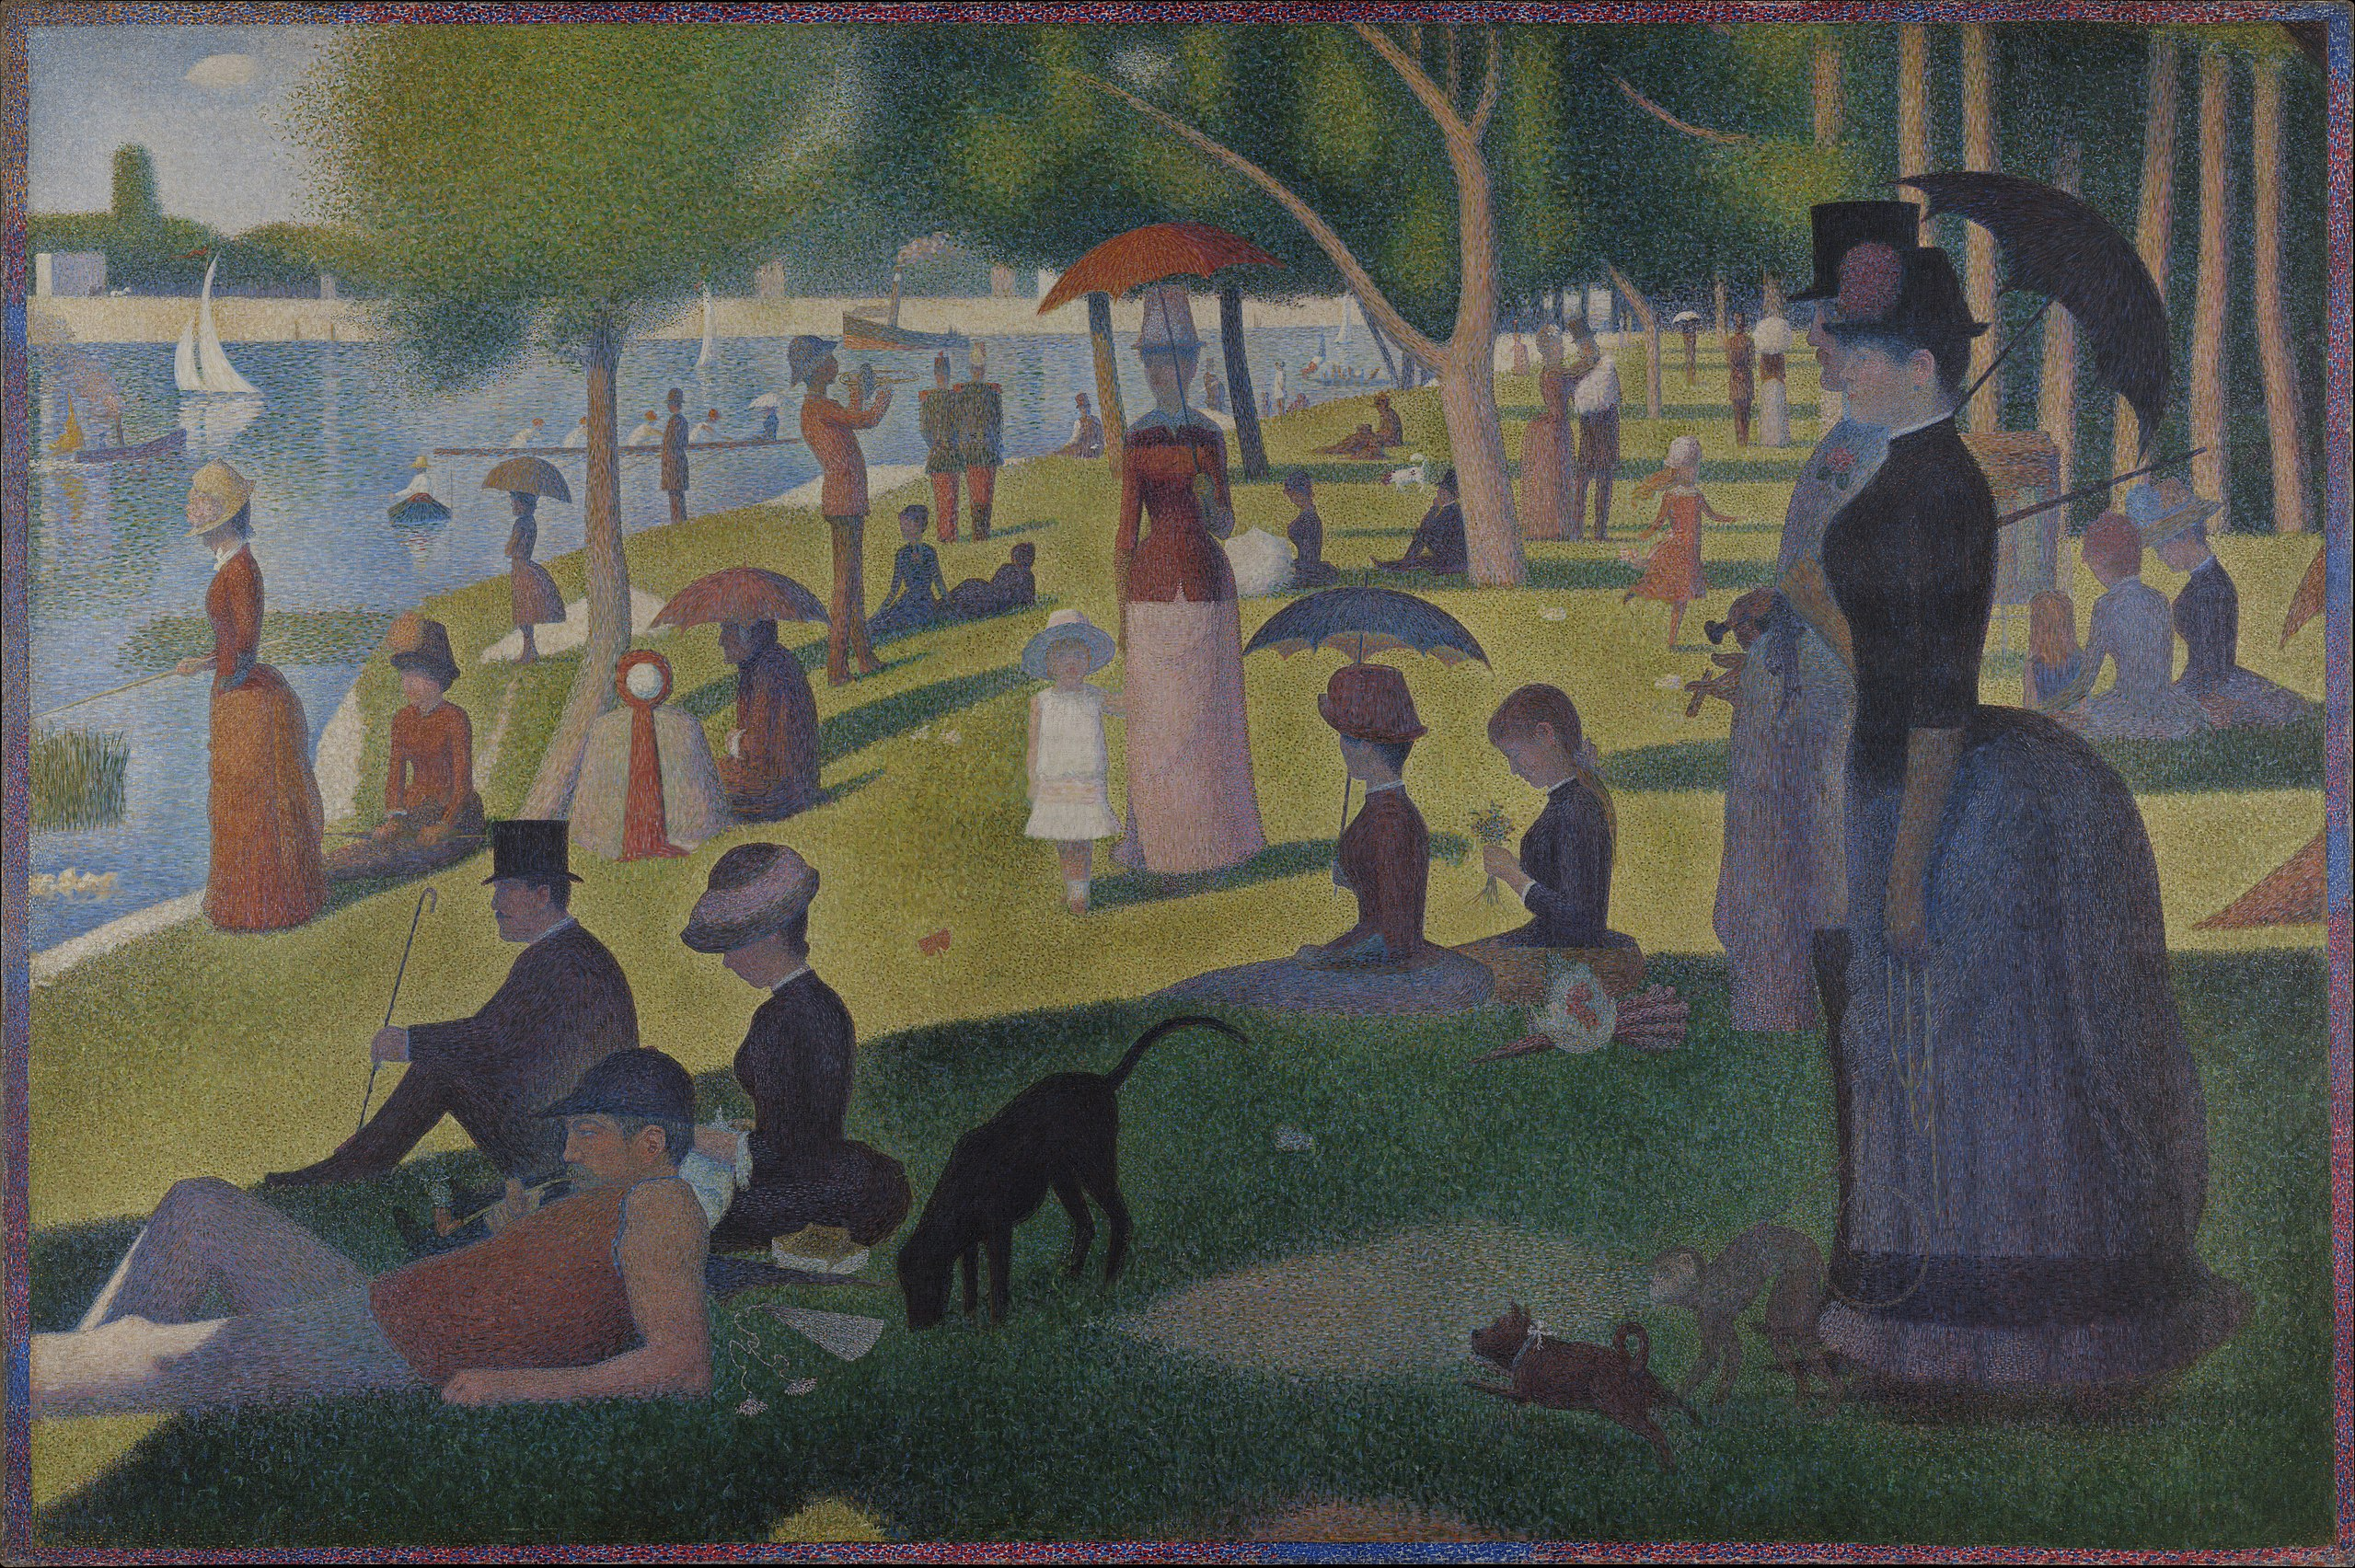 2560px-Georges_Seurat_-_A_Sunday_on_La_Grande_Jatte_--_1884_-_Google_Art_Project